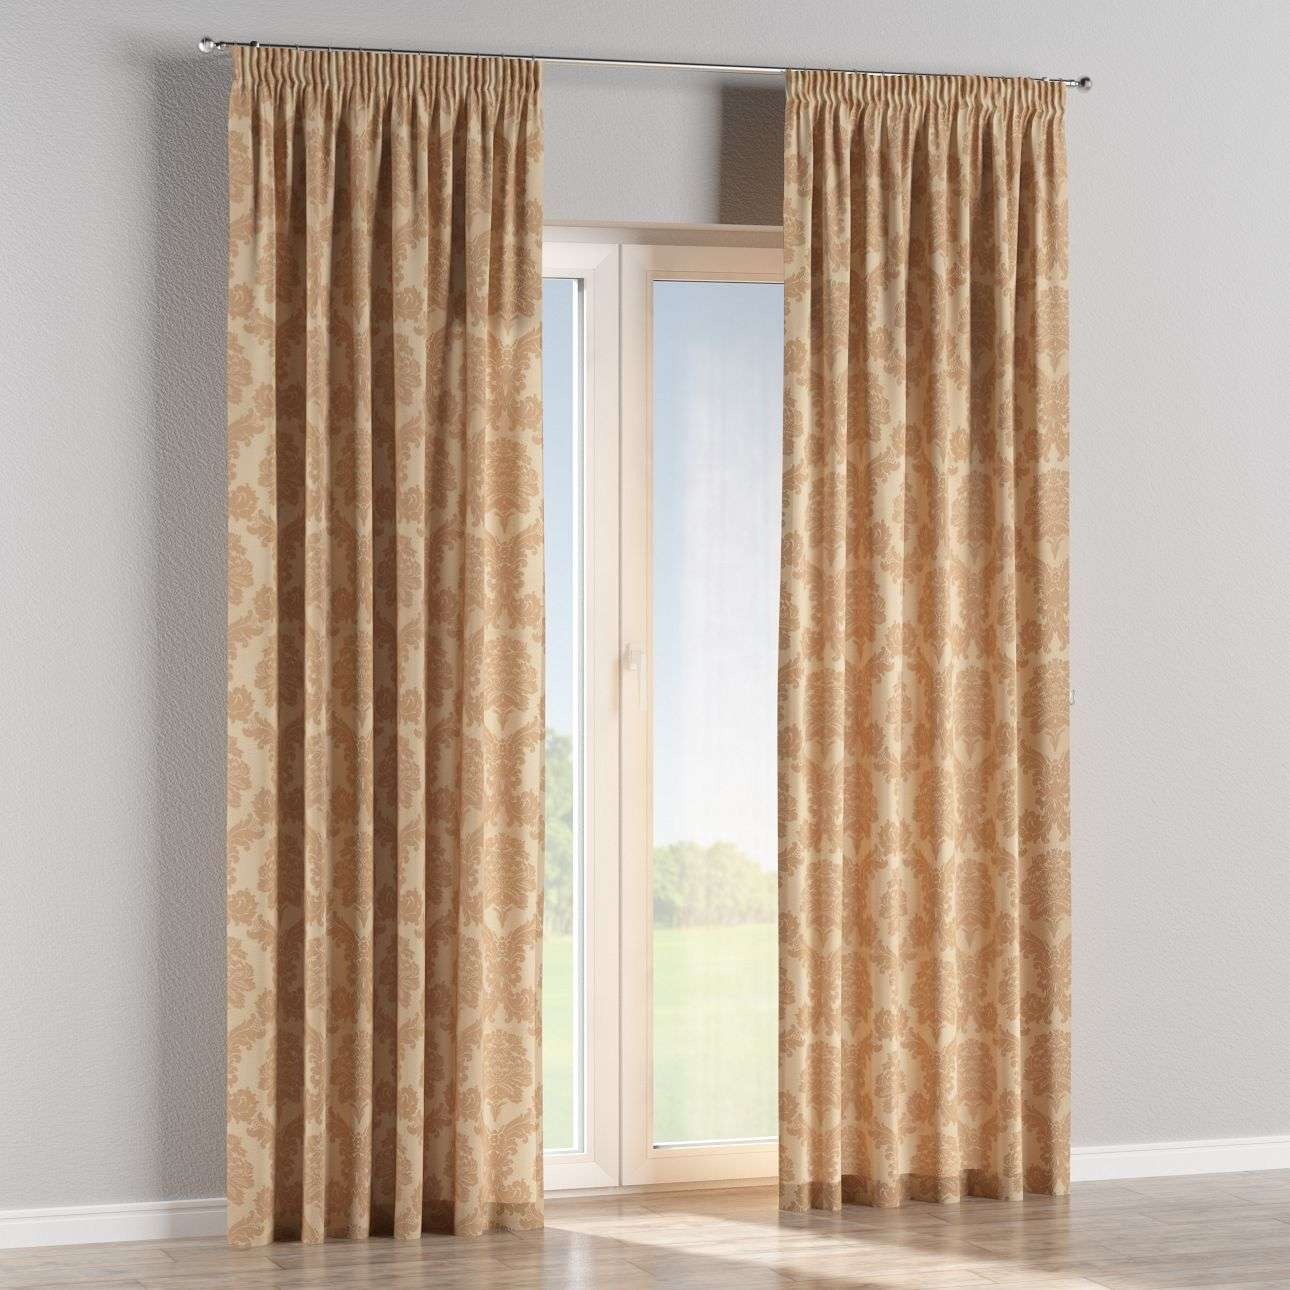 Pencil pleat curtains 130 x 260 cm (51 x 102 inch) in collection Damasco, fabric: 613-04